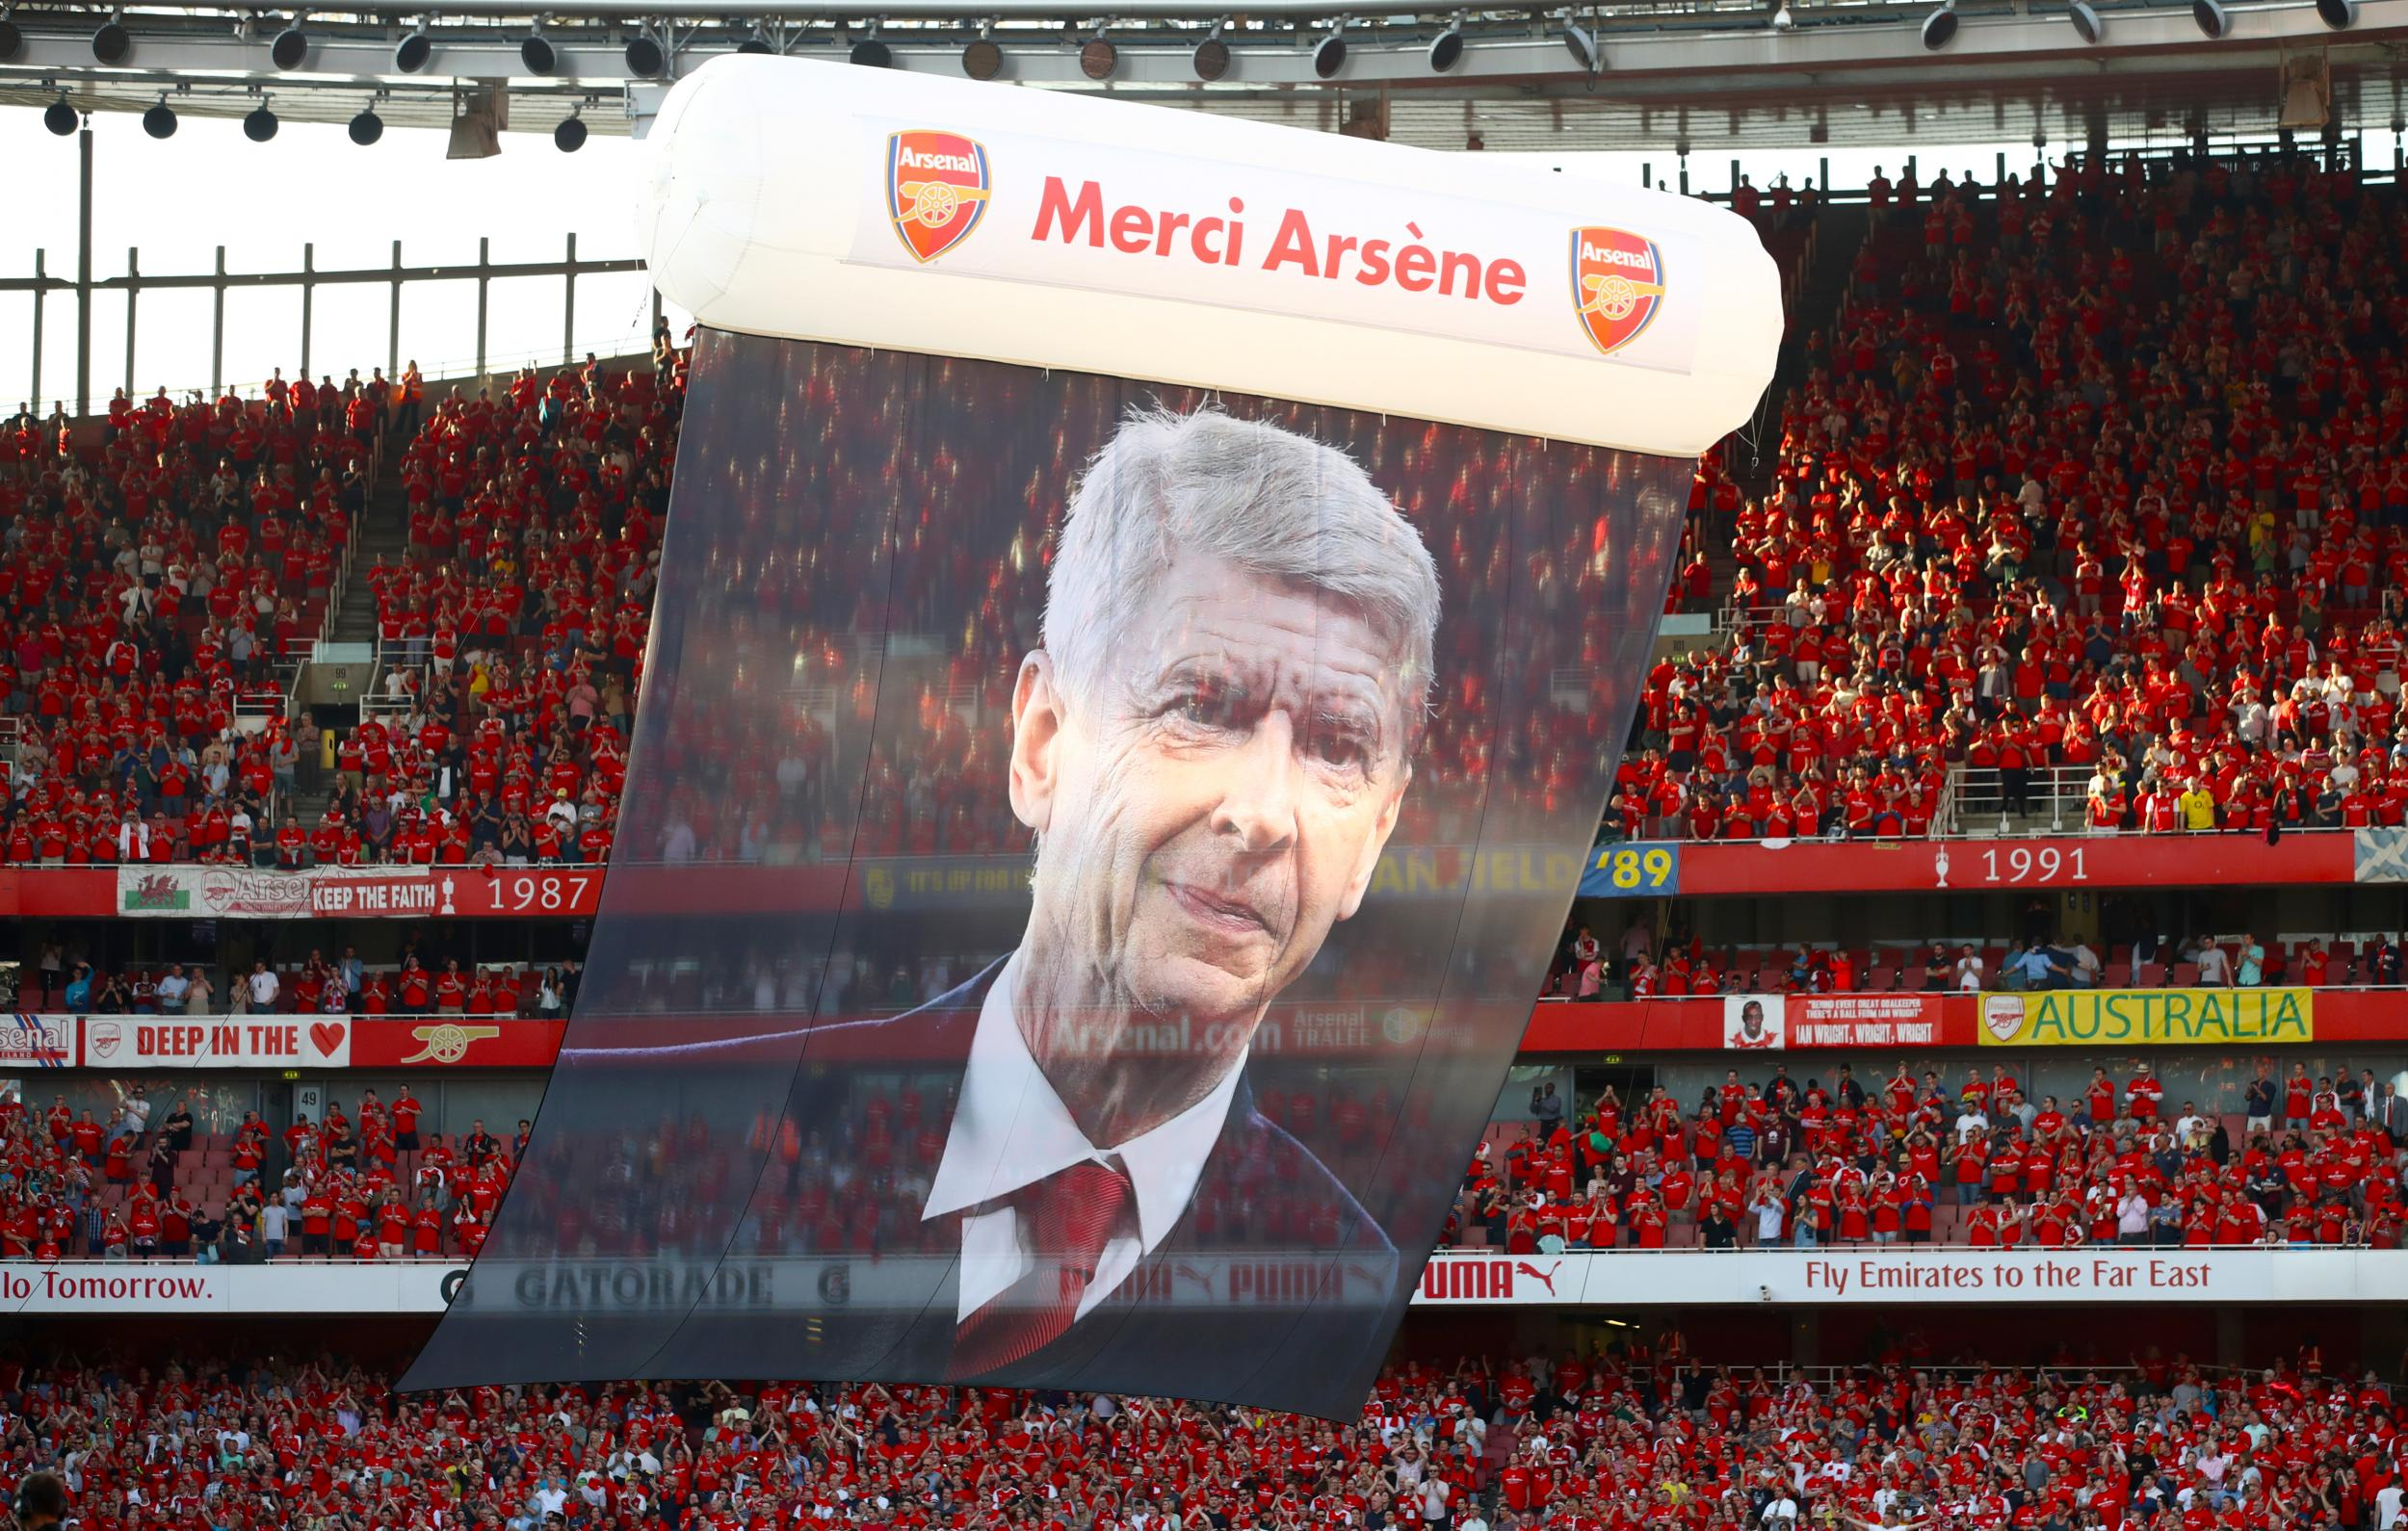 A weird day at Arsenal to forebode the weirder days yet to come without Arsene Wenger – and no one knows what's next